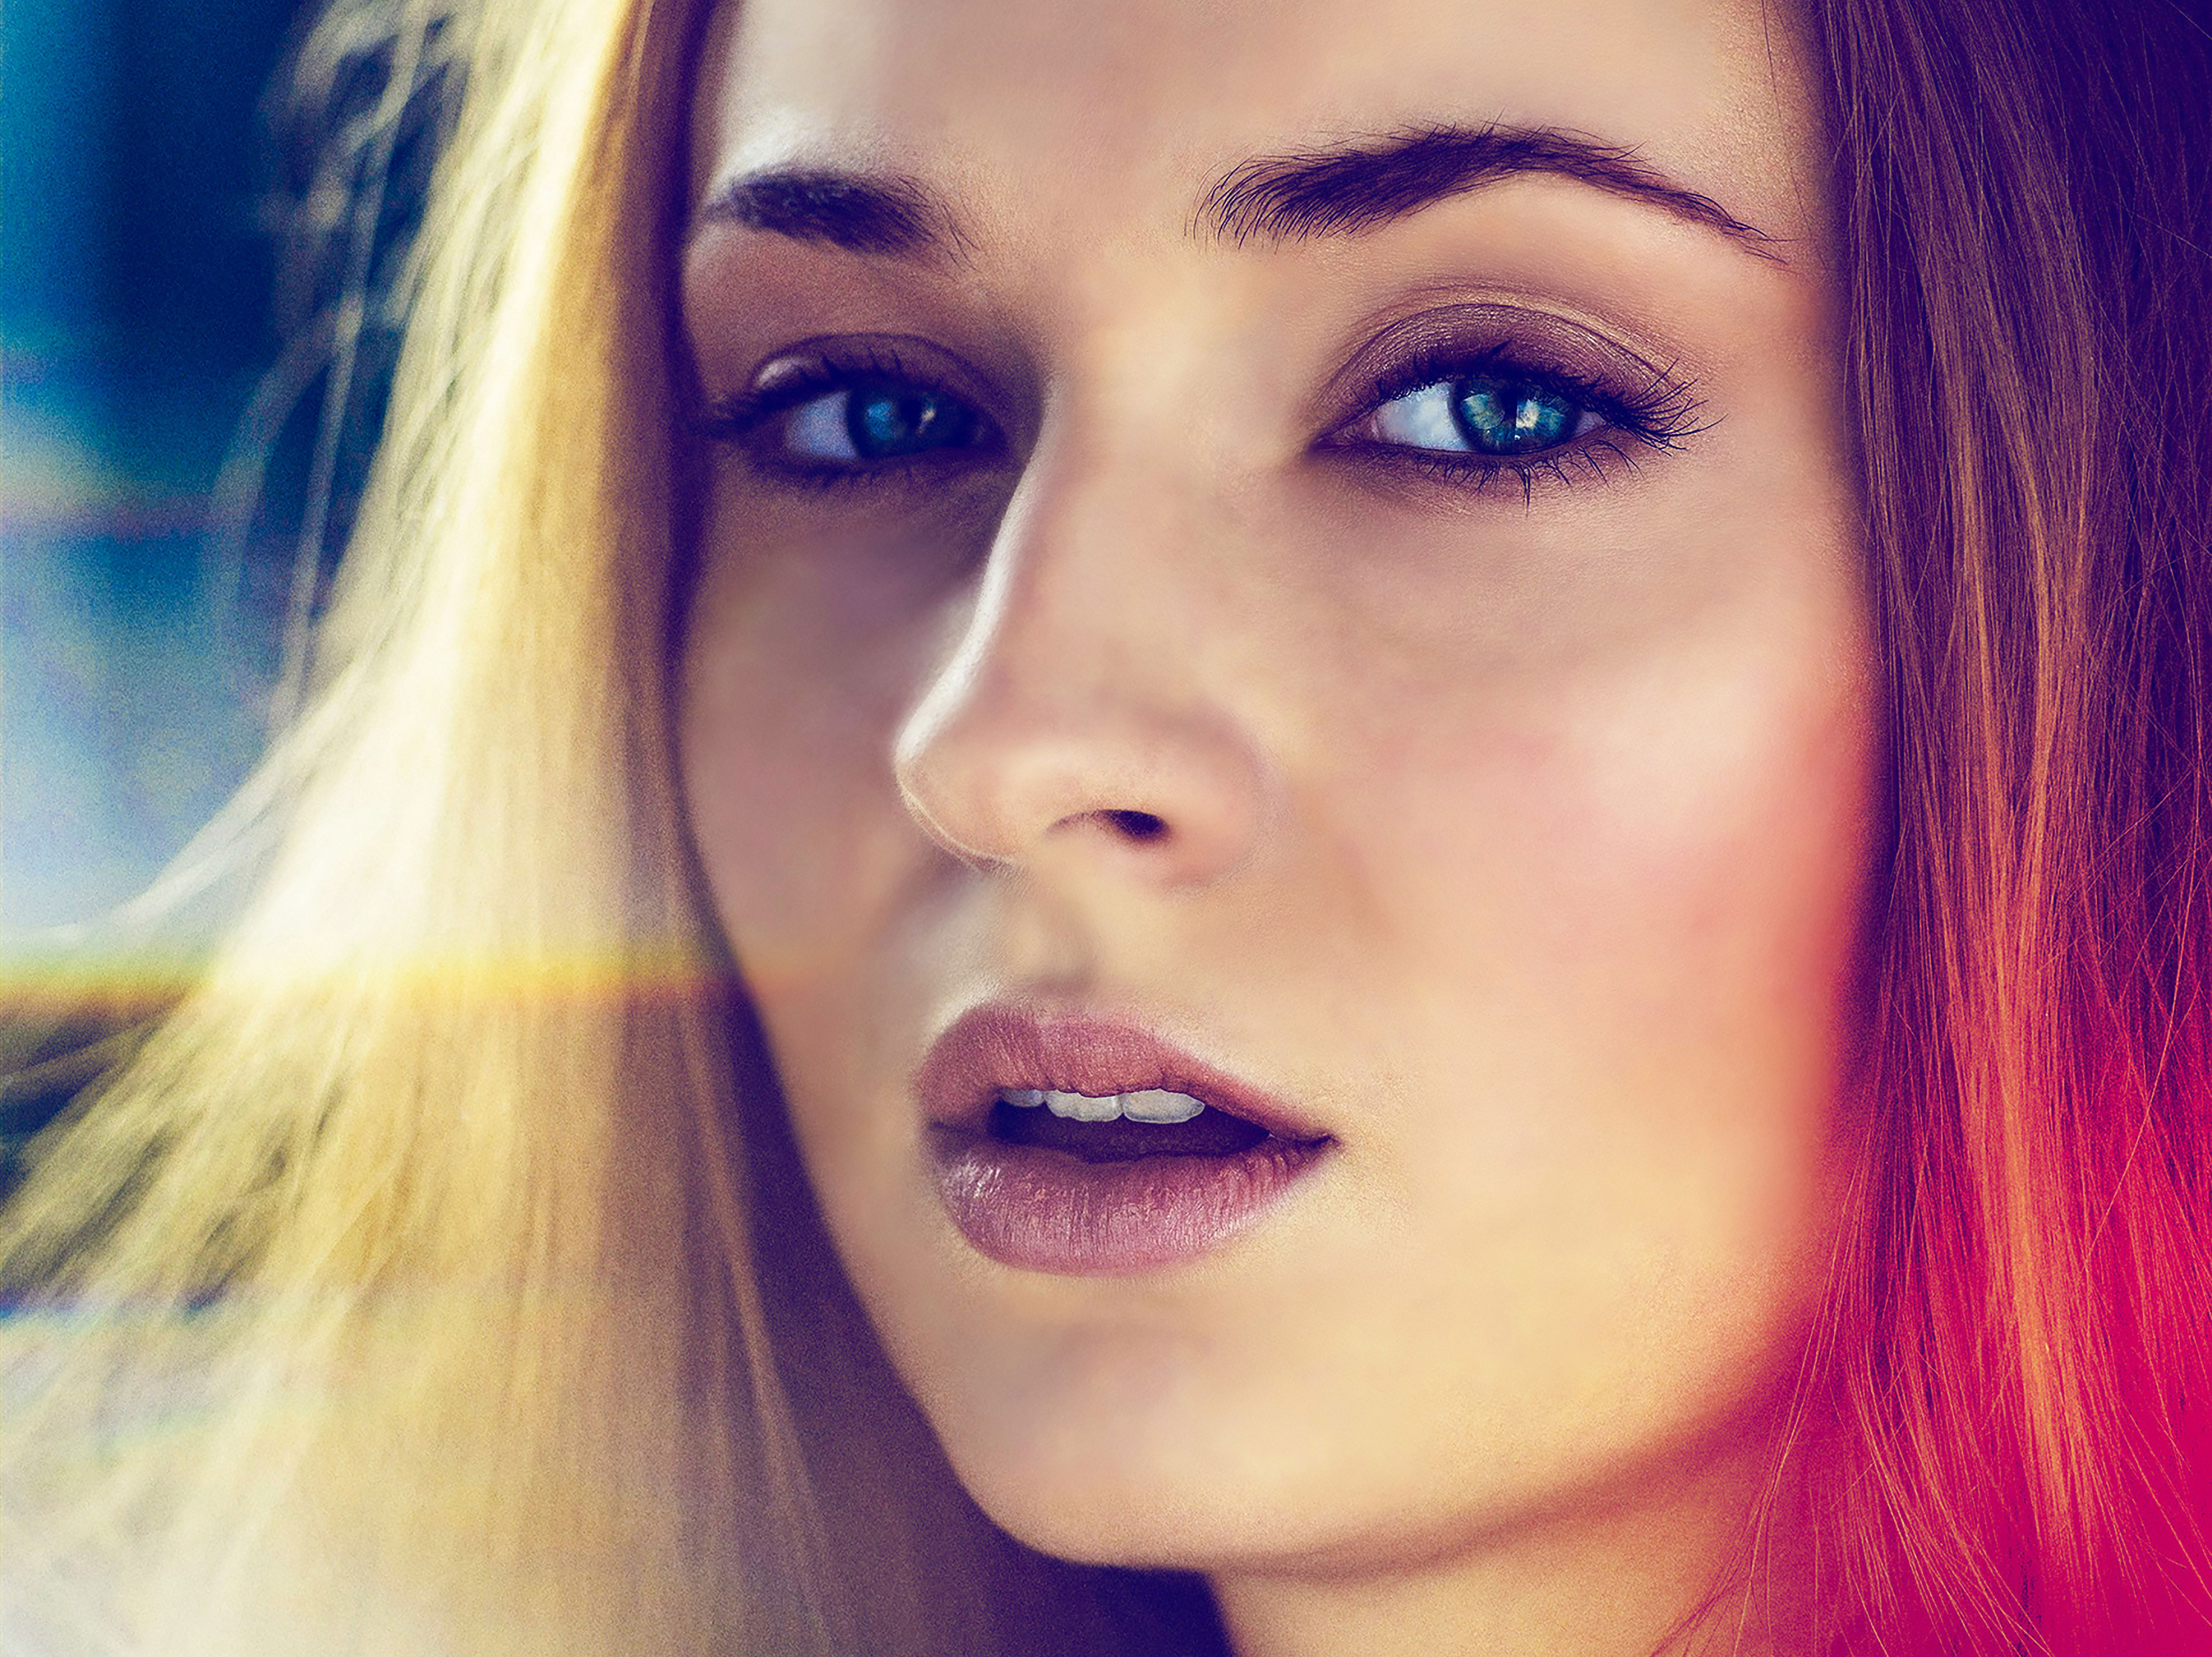 sophie turner 5k 2017 hd celebrities 4k wallpapers